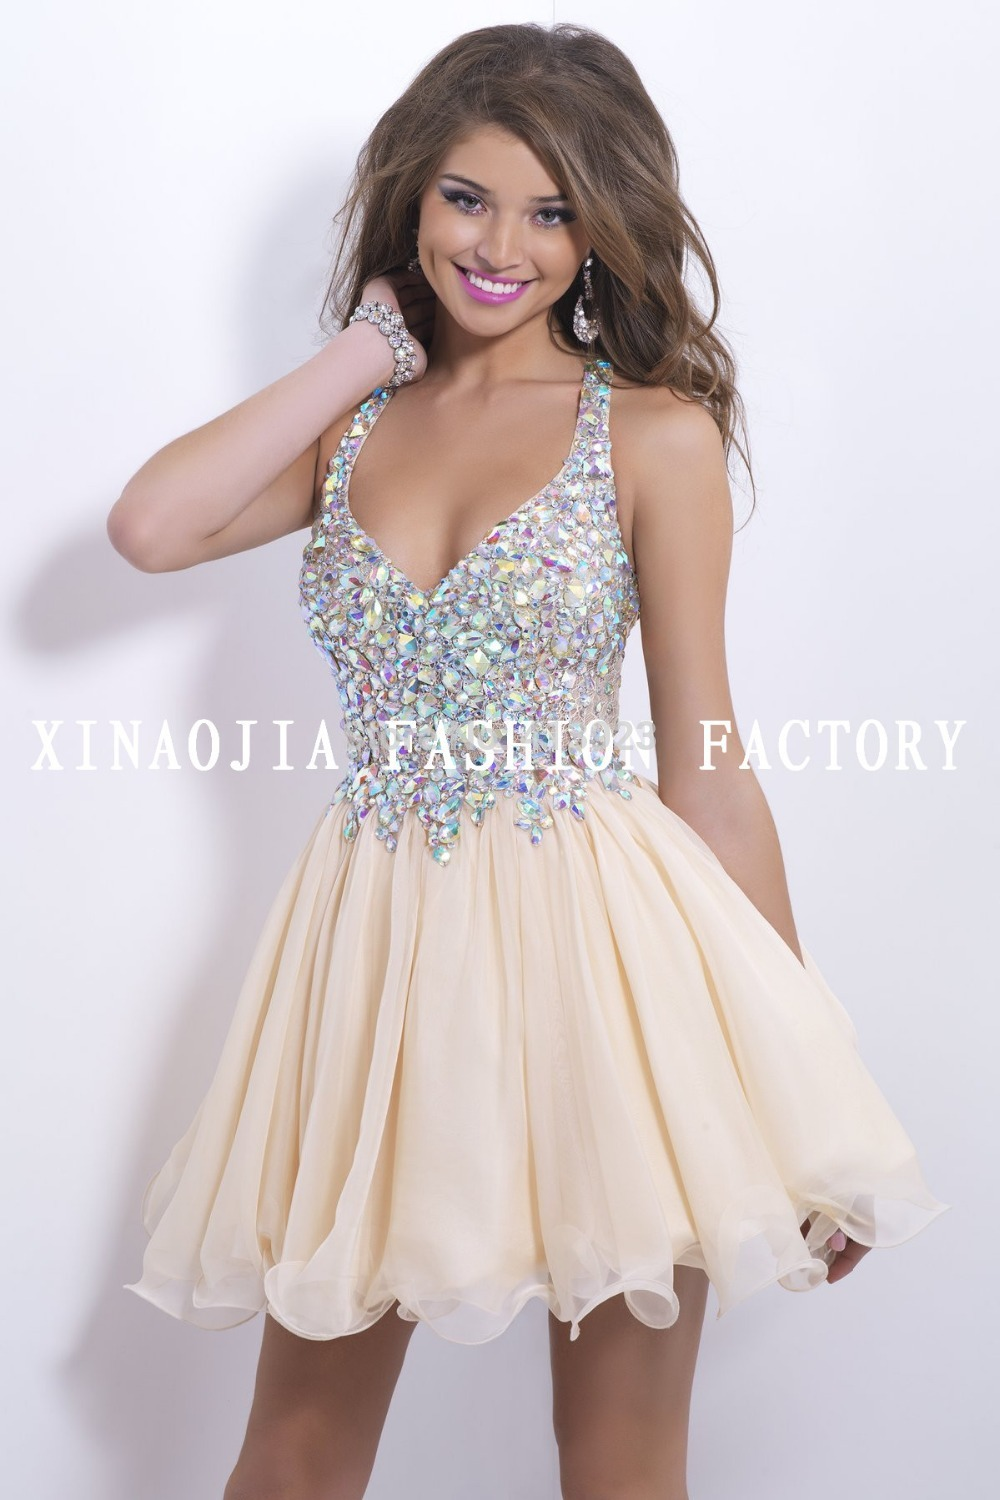 Aliexpress.com : Buy Free Shipping Real Photo 2014 100% True Crystal V Neck Brilliant Beaded Chiffon Dress To Party from Reliable dress glove suppliers on Chaozhou City Xin Aojia dress Factory